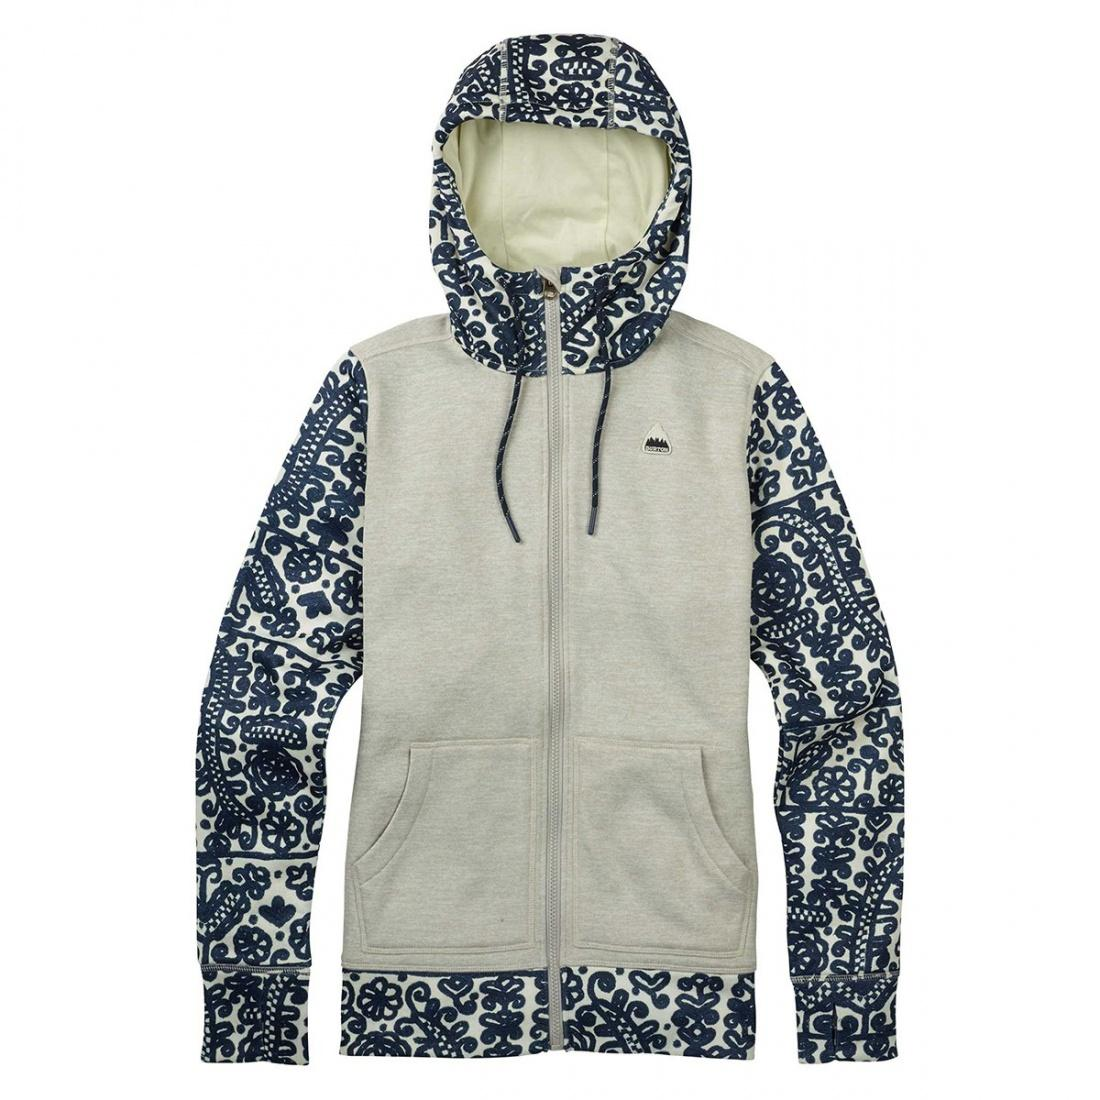 Burton Толстовка Burton Quartz Full-Zip Dove Heather, , , FW18 S сумка дорожная burton wheelie dbl deck hawaiian heather